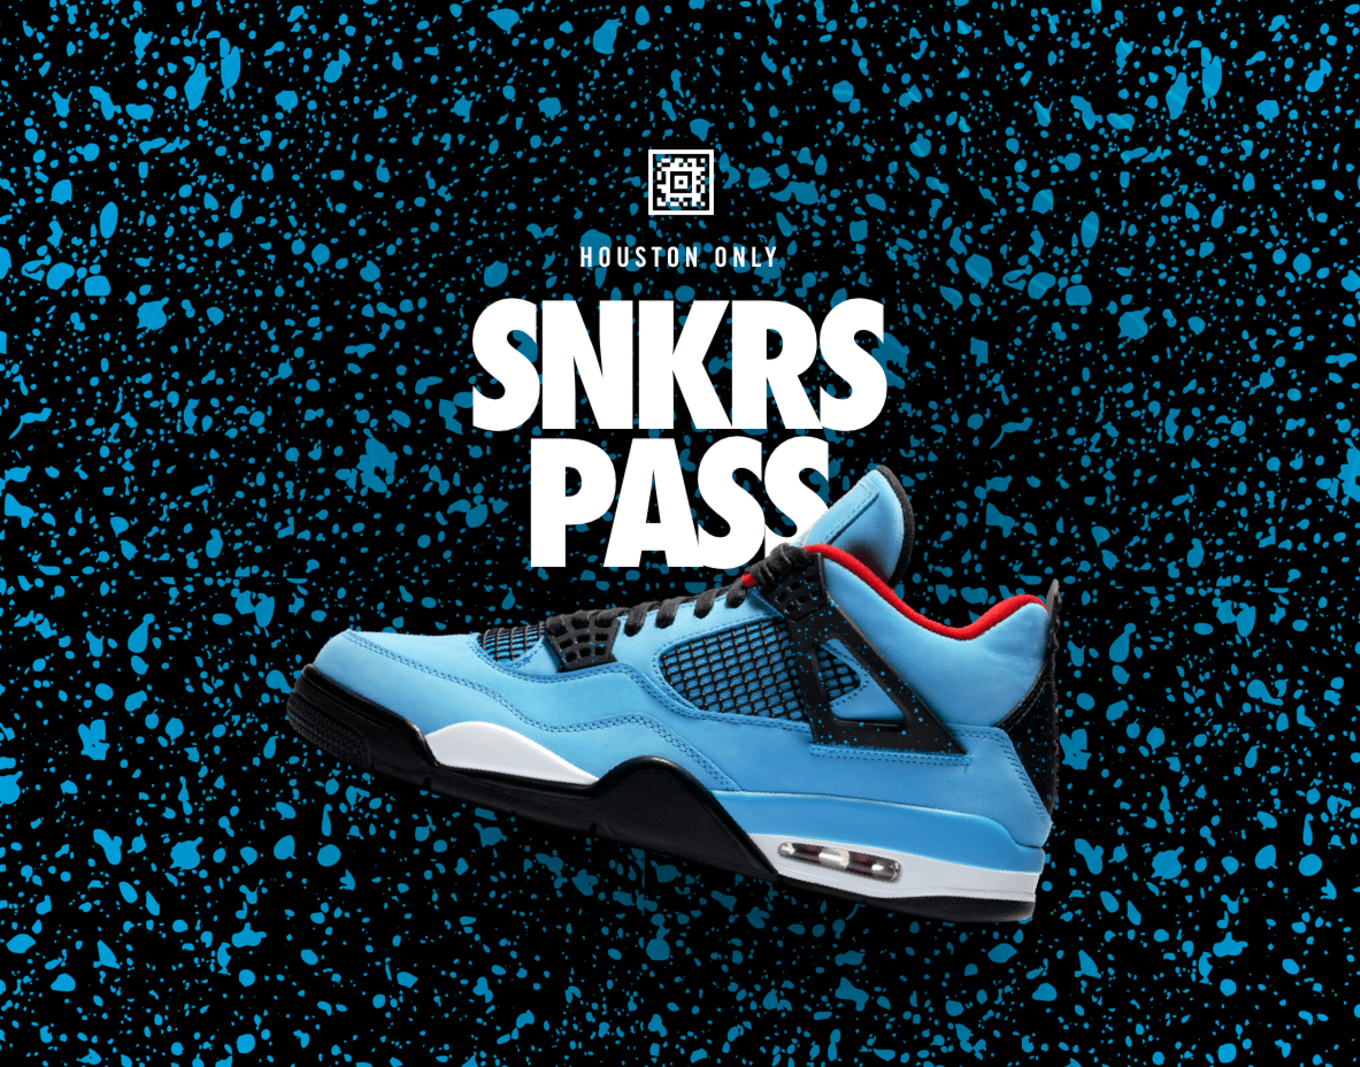 b93c7320b9b Travis Scott's Air Jordan 4s Available Early. SNKRS Pass for Houston.